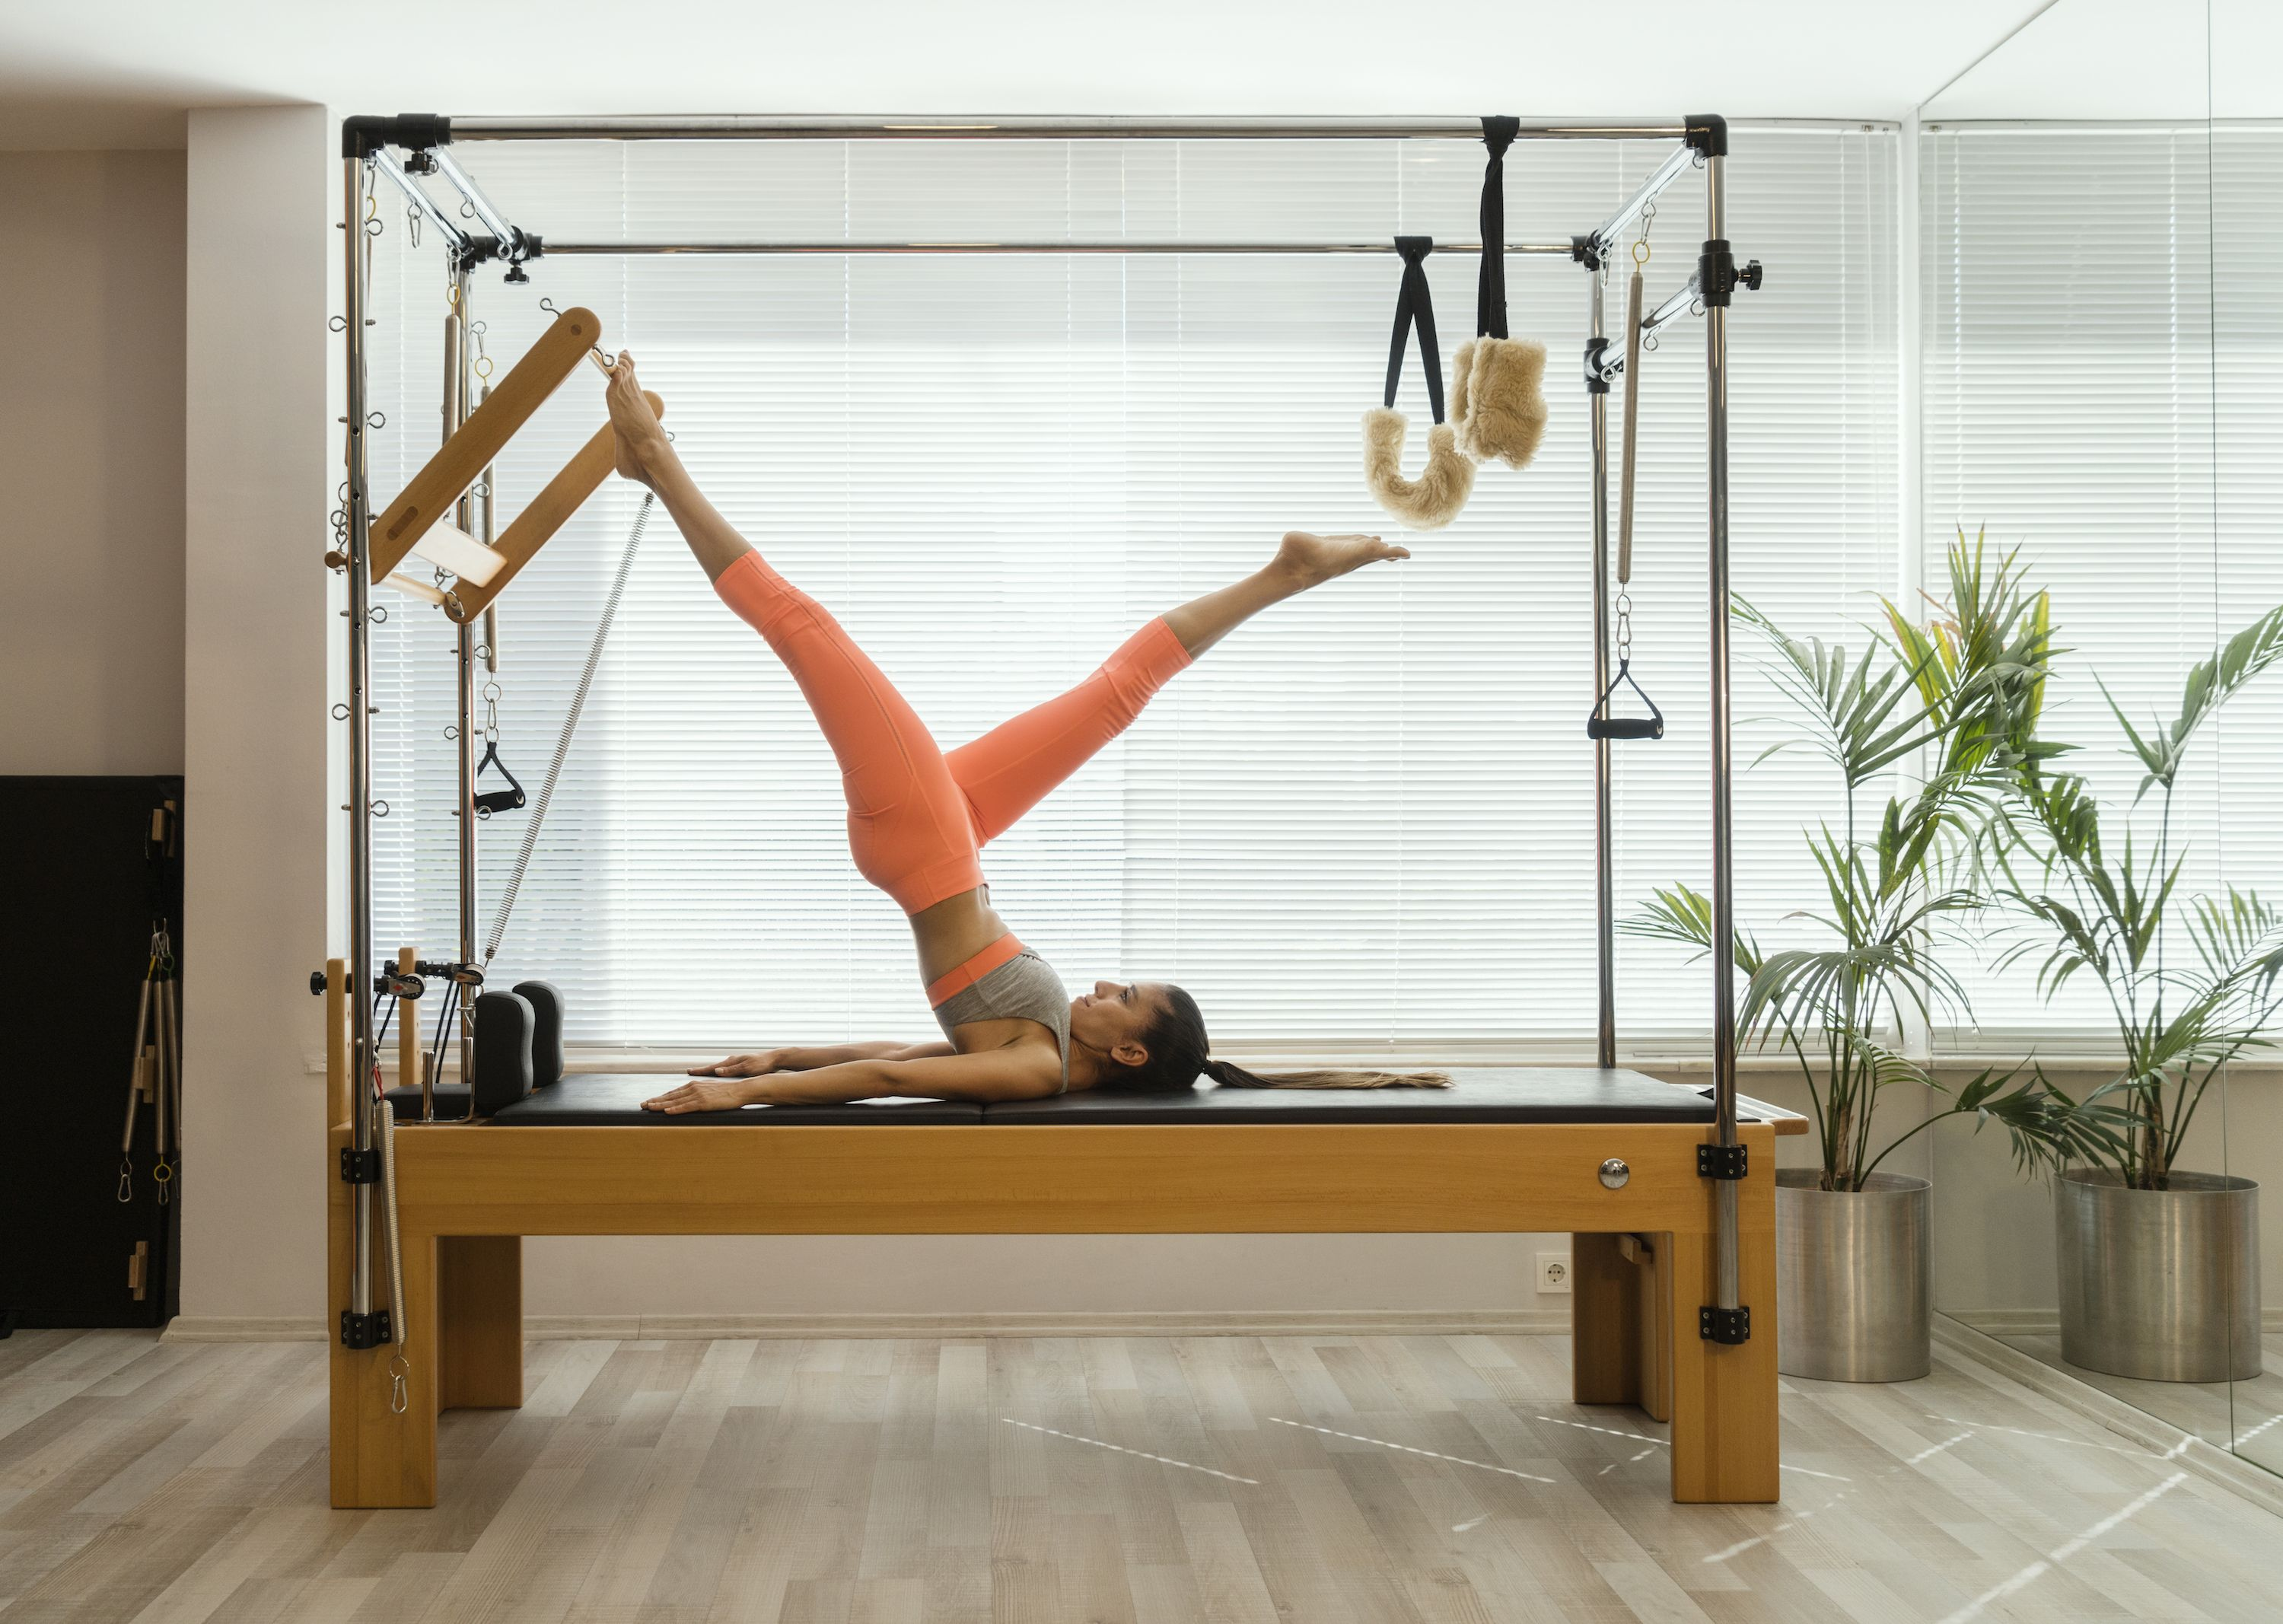 Pilates Reformer is Big News (Again). Here's Why It's So Popular + it's Benefits